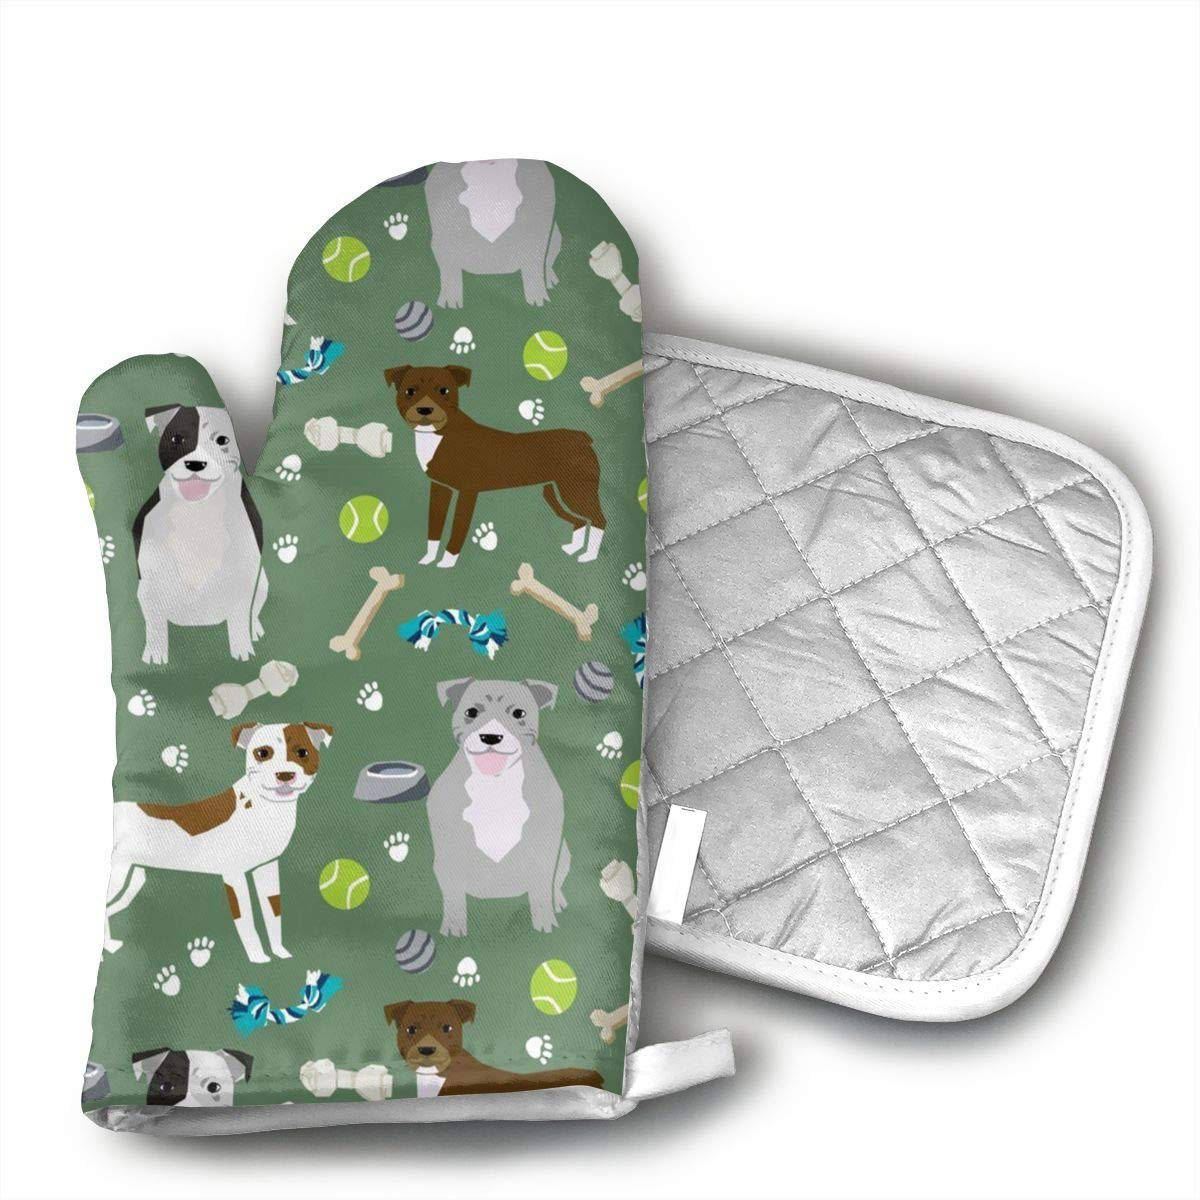 Wiqo9 Dogs and Dog Toys Pitbulls Oven Mitts and Pot Holders Kitchen Mitten Cooking Gloves,Cooking, Baking, BBQ.